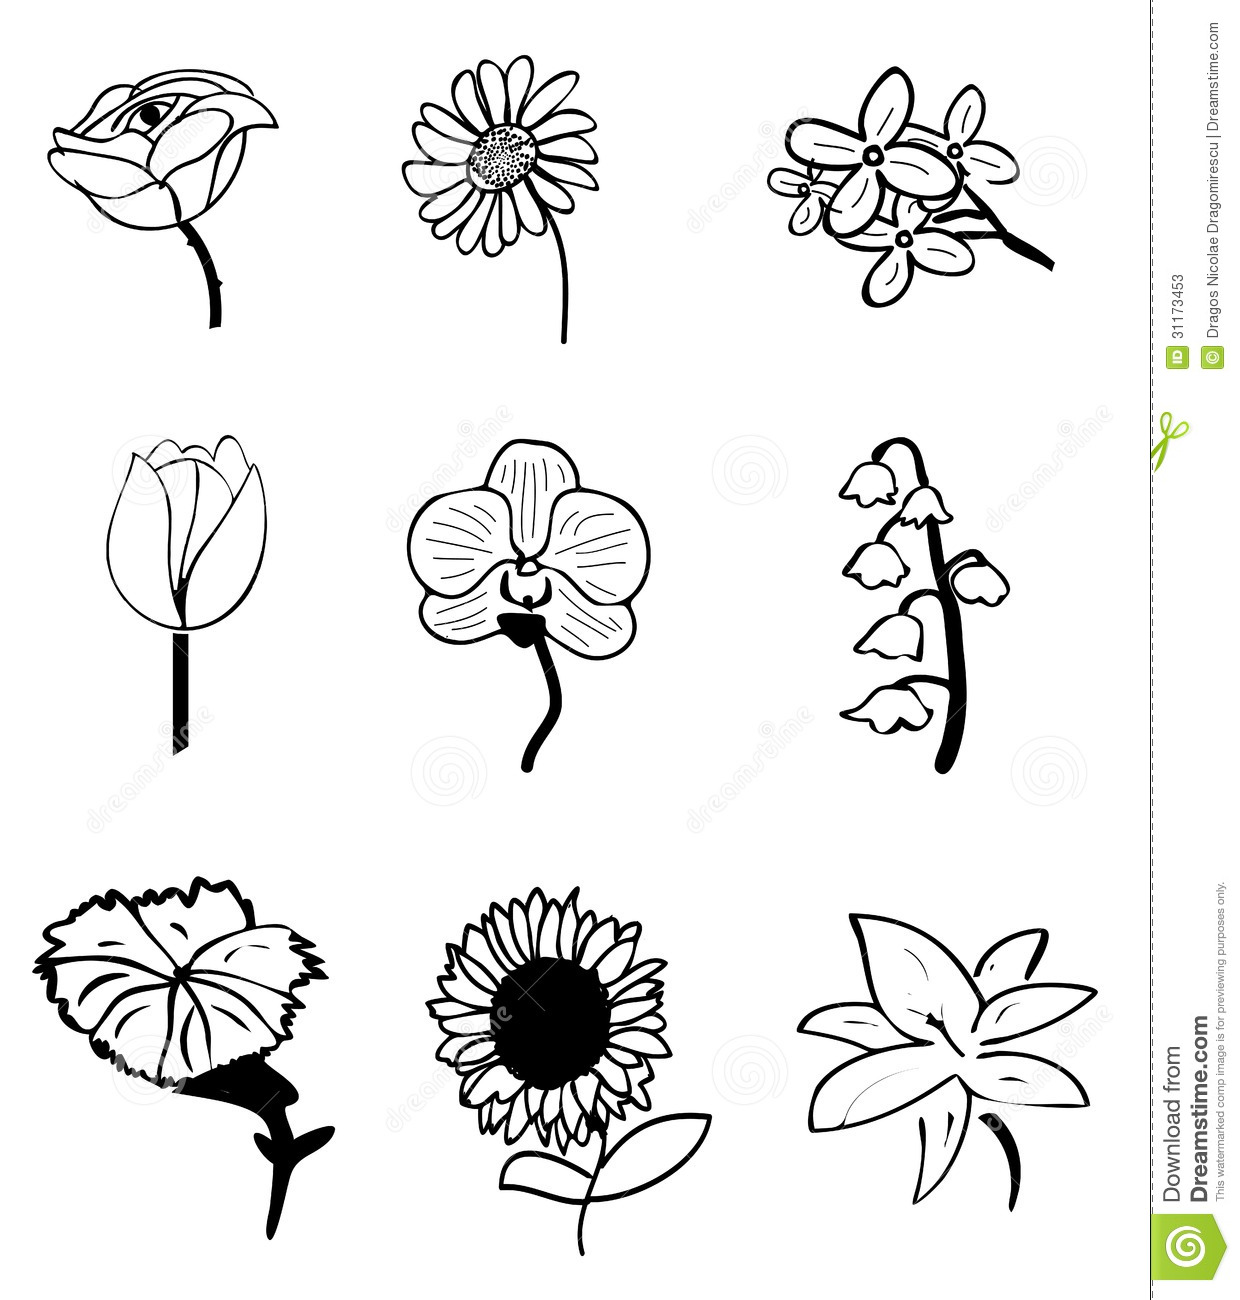 flower sketches stock vector illustration of carnation 31173453